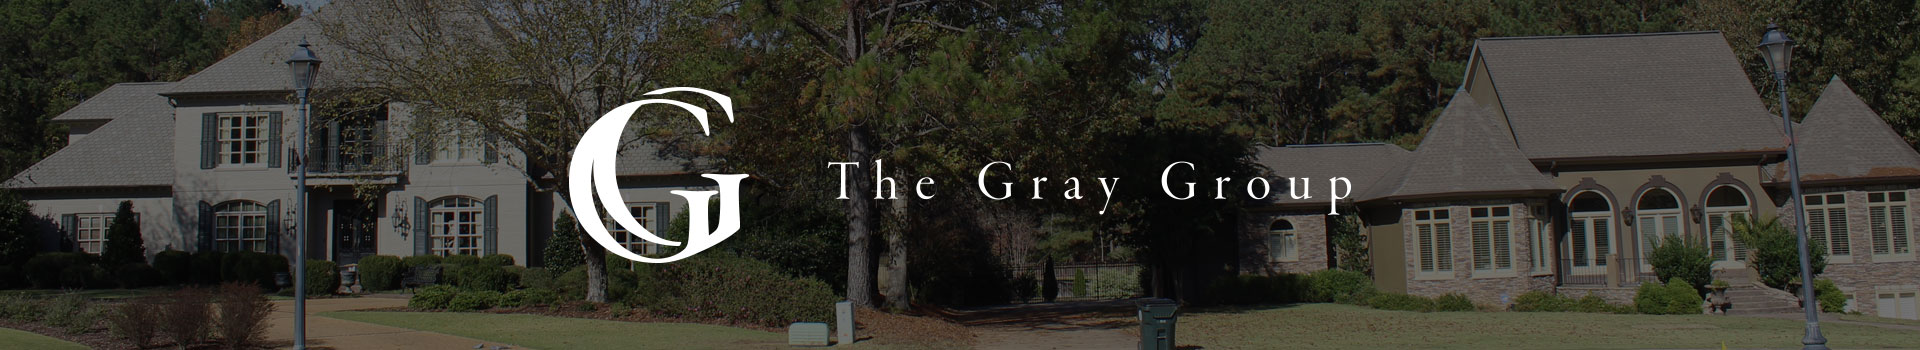 Crown Point- The Gray Group at Keller Williams Realty